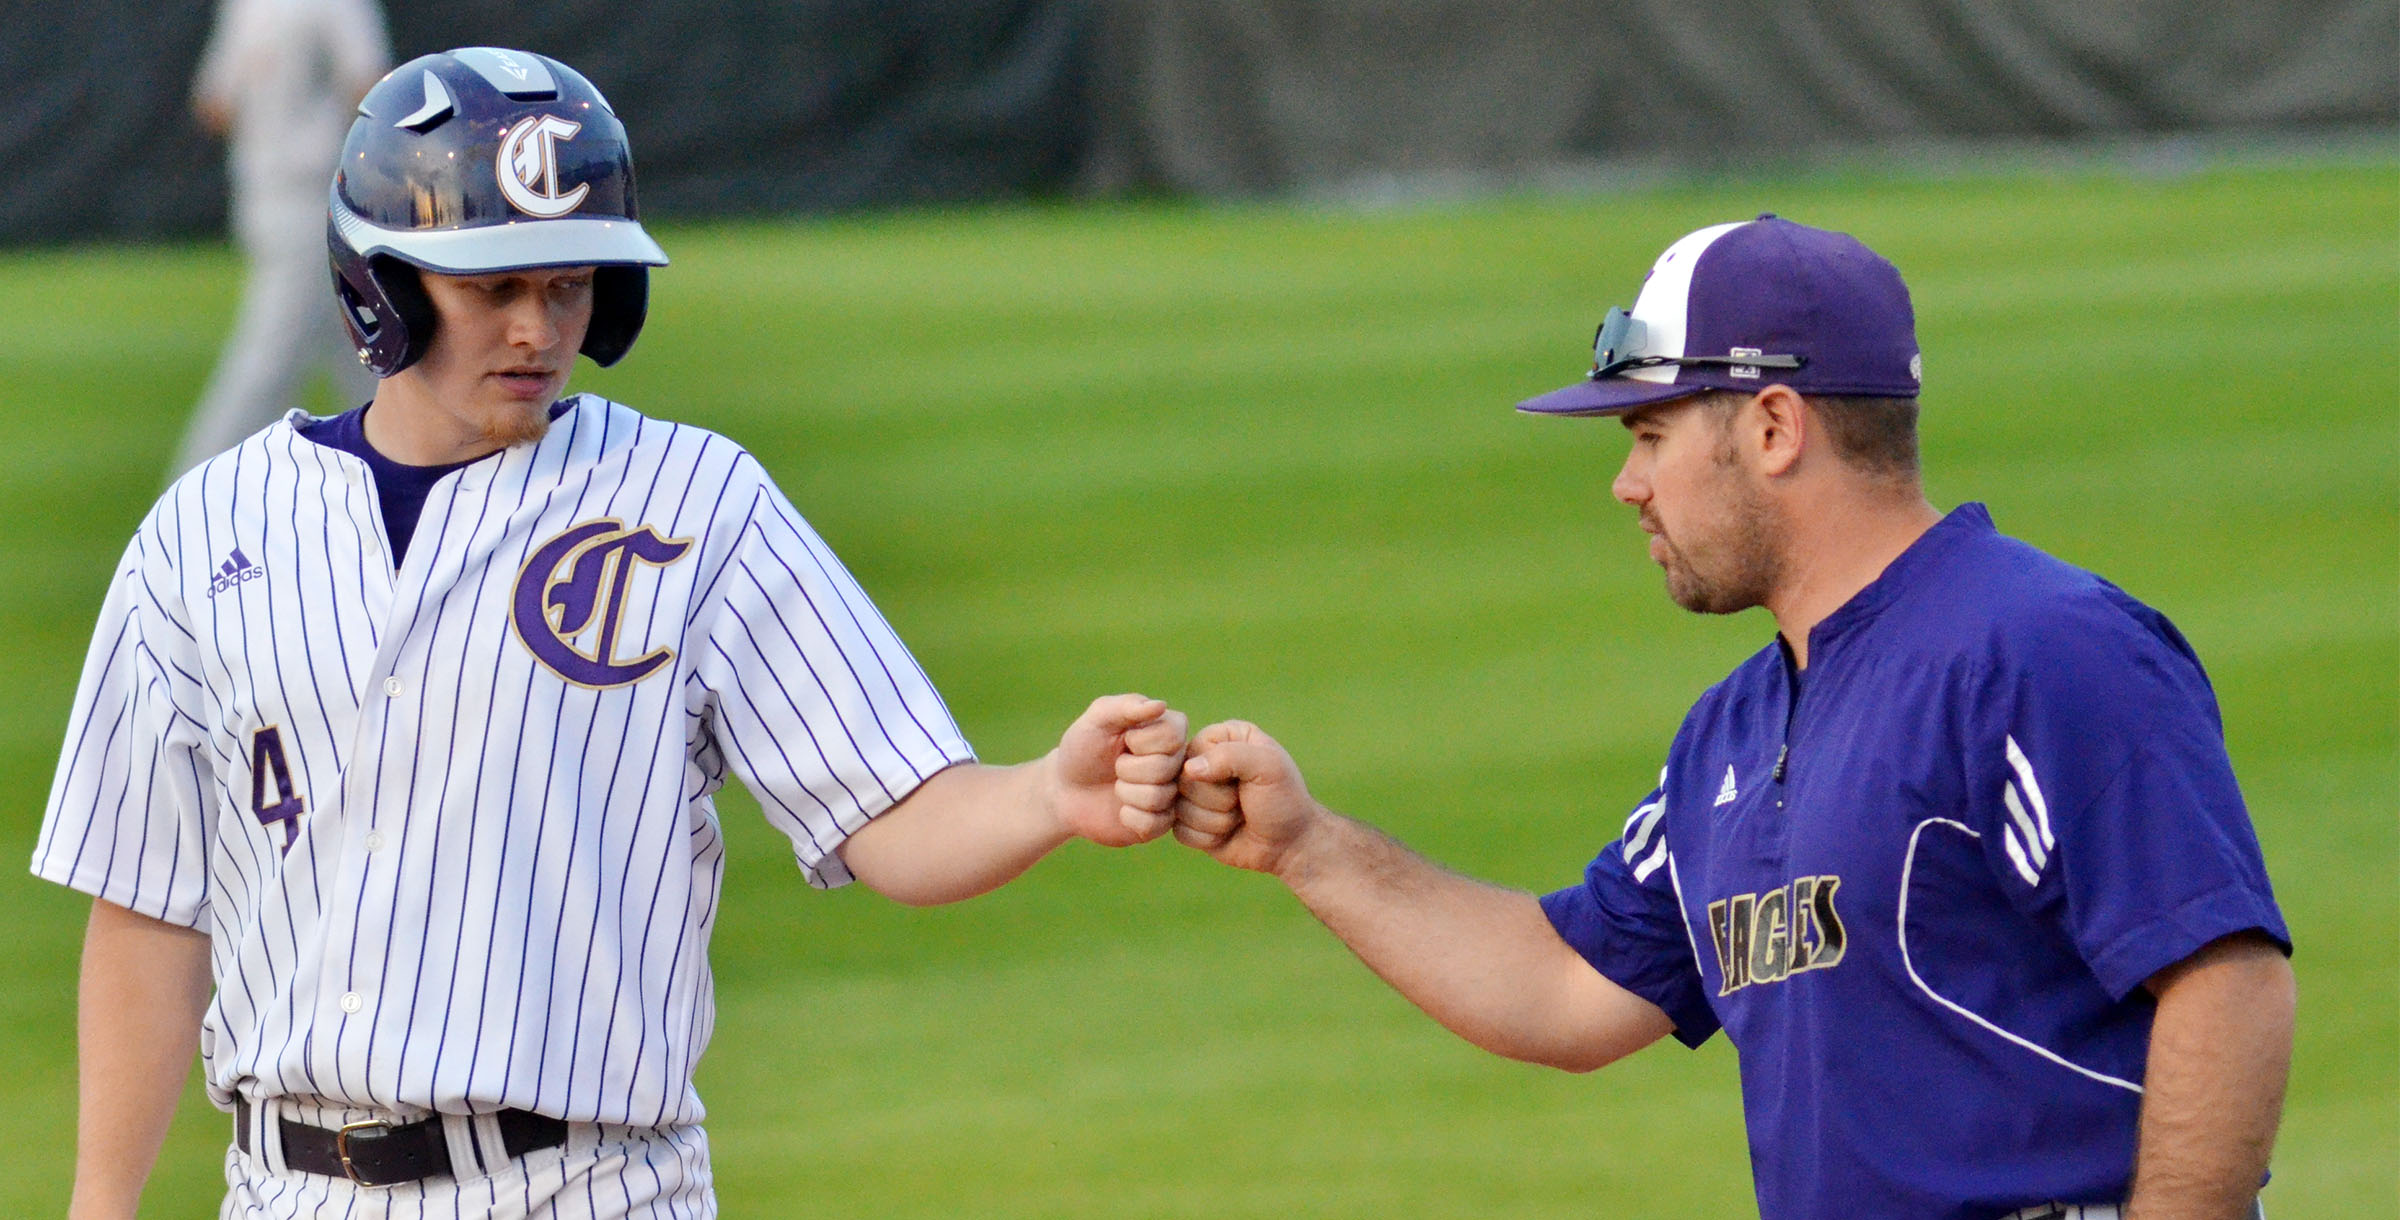 CHS junior Wyatt Houk bumps fists with assistant coach Blake Milby after a hit.